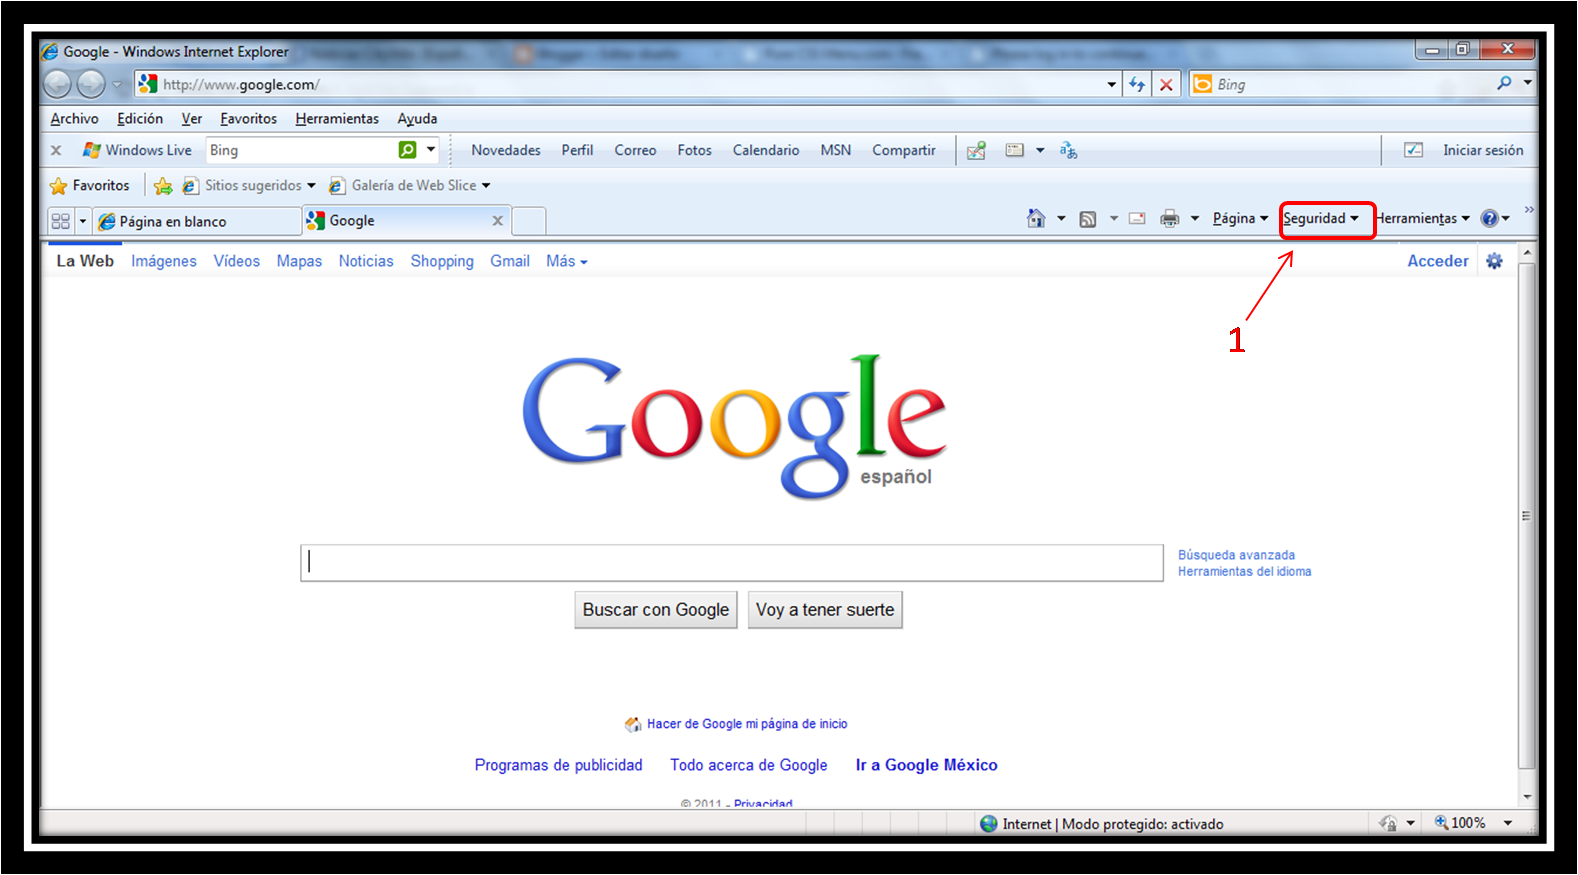 how to make google as homepage in internet explorer